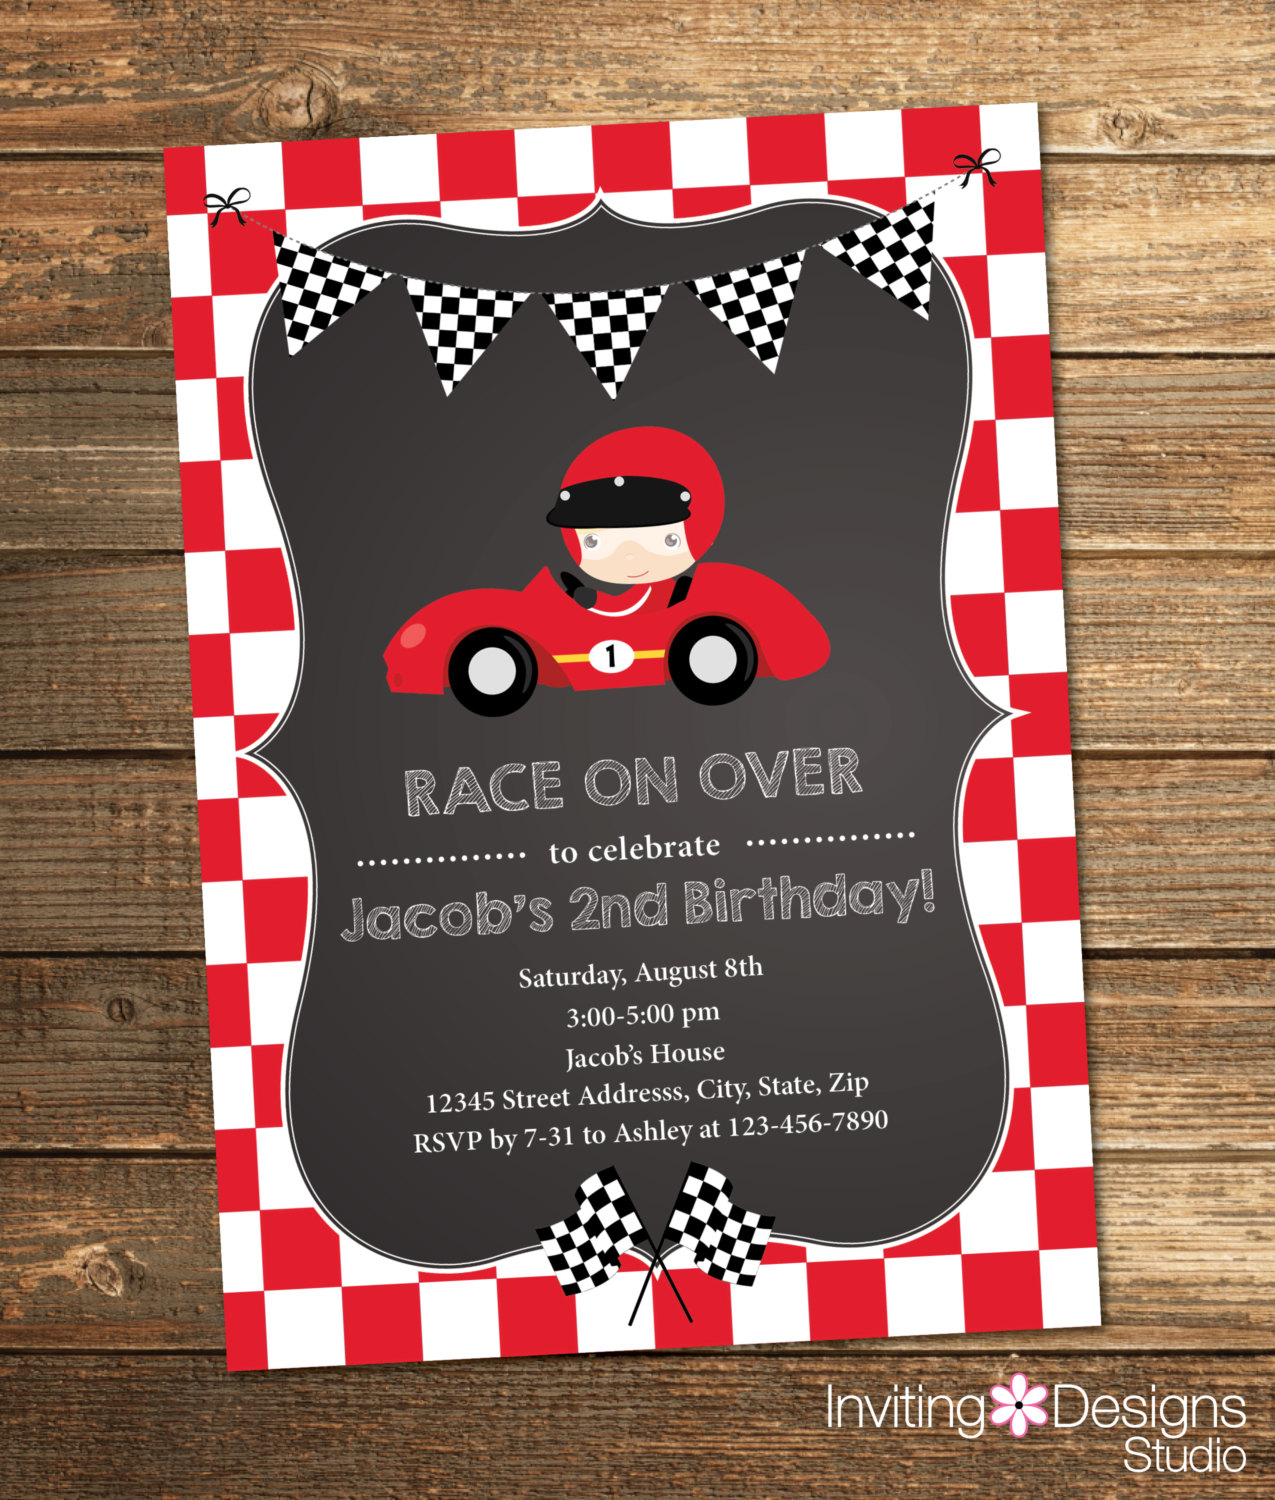 race car birthday invitation wording ; wonderful-race-car-birthday-invitations-beautiful-Birthday-invitation-sample-available-to-use-for-free-4